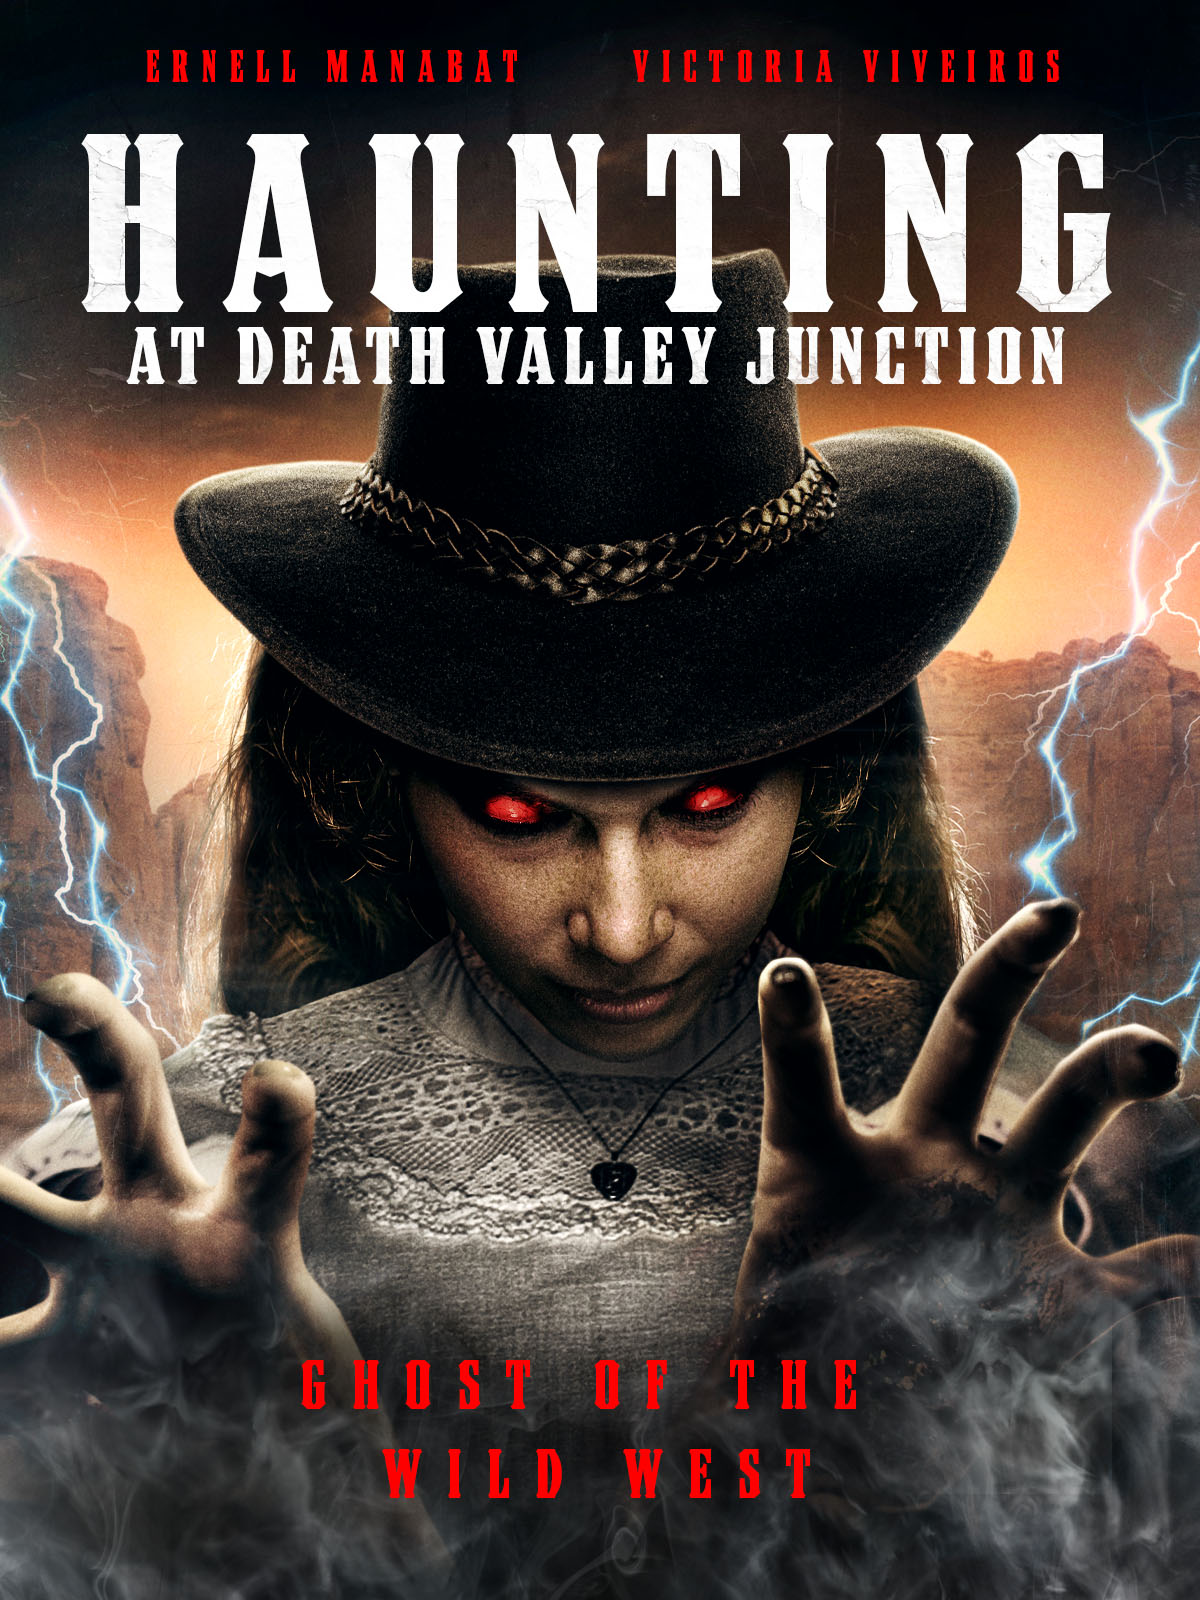 Haunting at Death Valley Junction (2020) Hindi Dubbed (Voice Over) + English [Dual Audio] WEBRip 720p [HD]